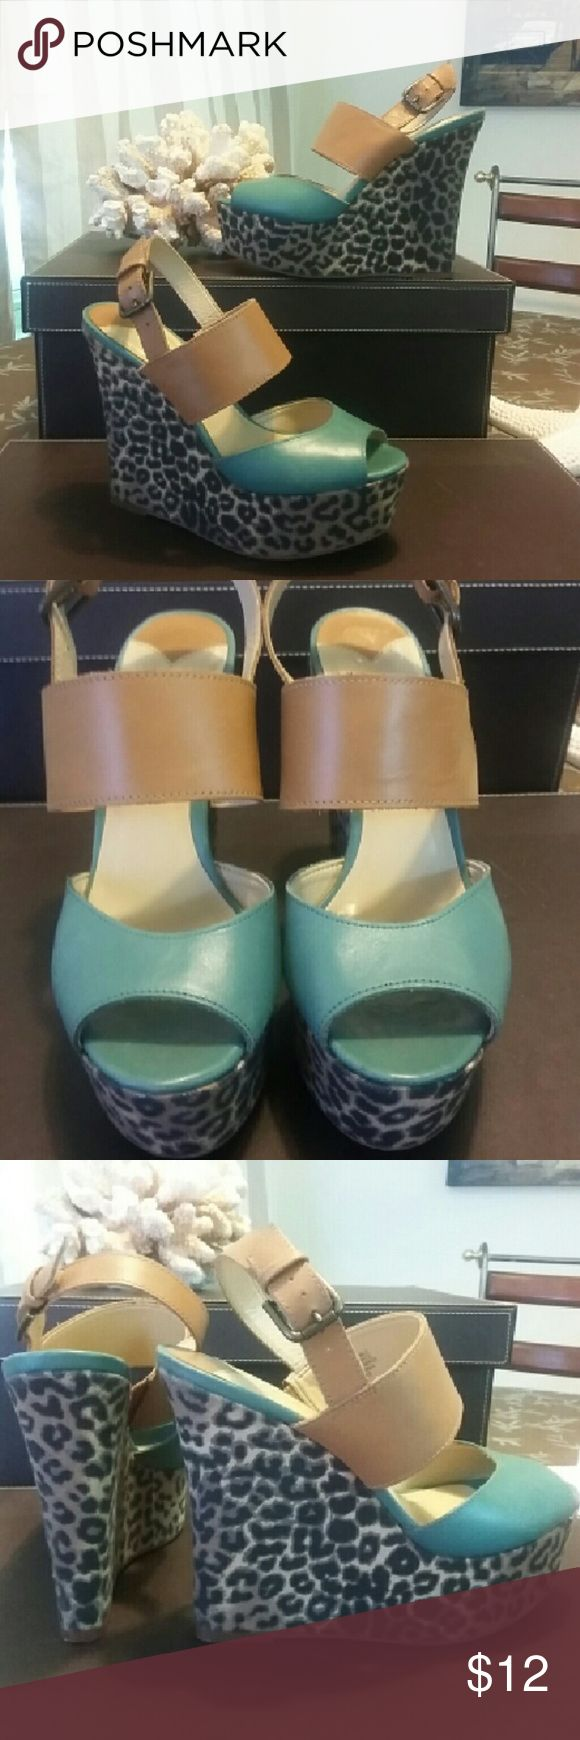 Nine West Wedge Plateau Heels sz.7M Nine West Wedge Plateau Heels sz.7M...very good used condition...Leather upper Nine West Shoes Wedges